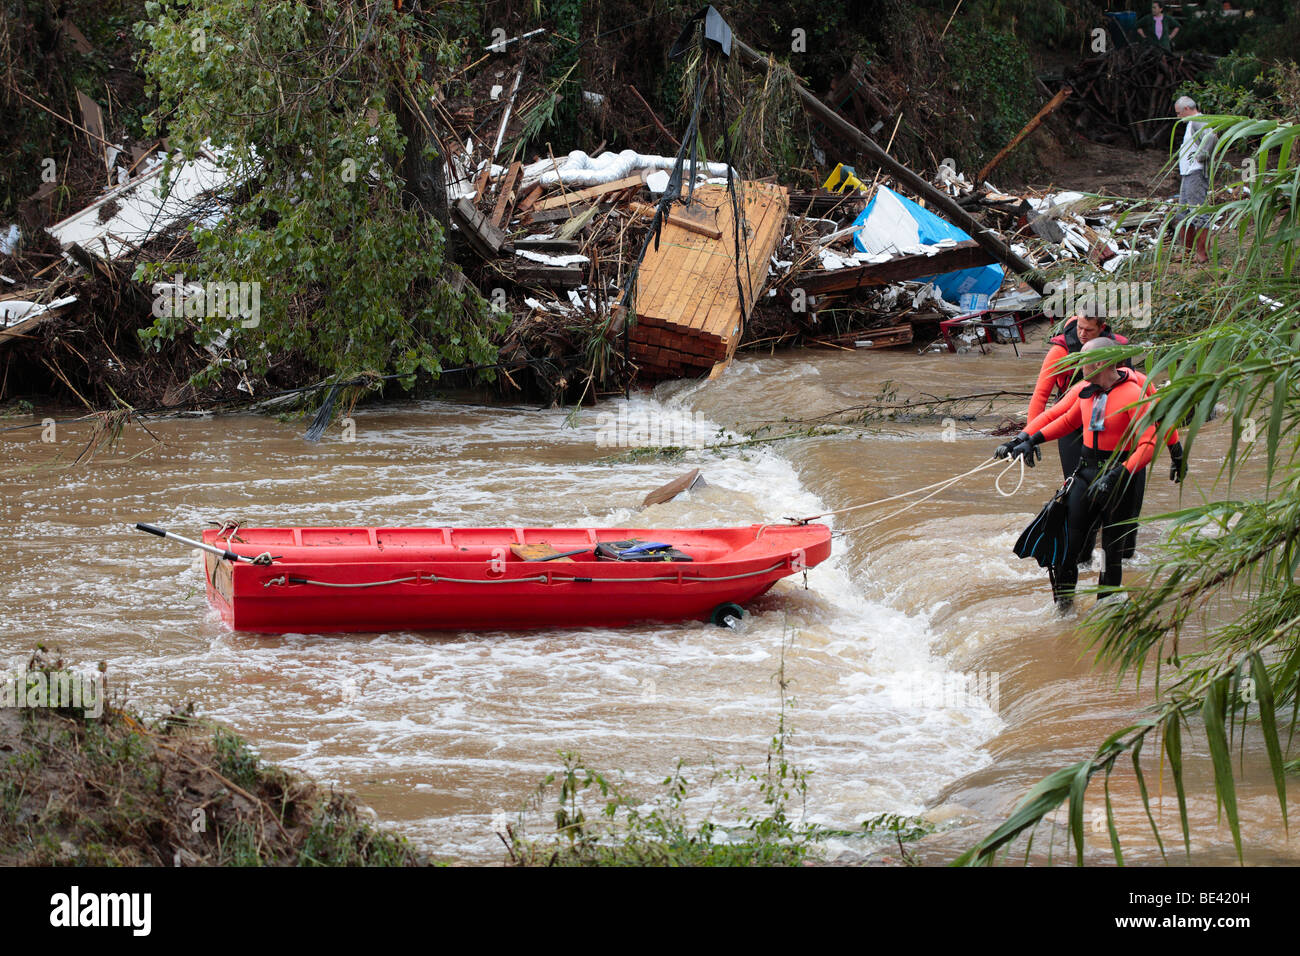 Search and Rescue team on swollen river, following floods near St Maxime, Provence, South of France. - Stock Image